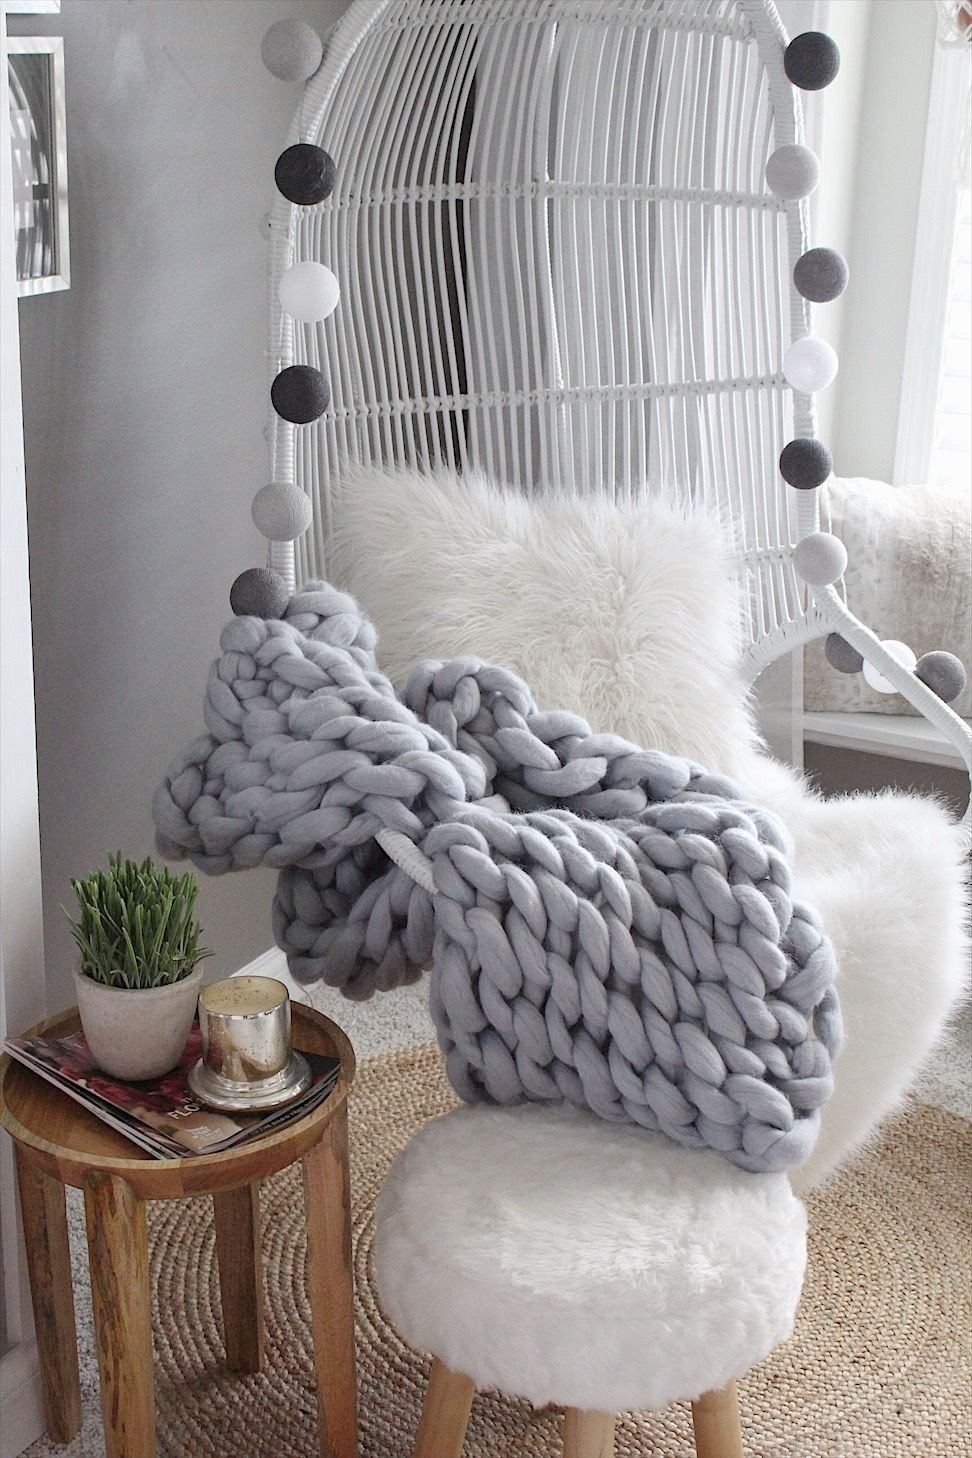 Hanging Chairs for Bedroom Elegant 5 Key Accessories Incorporated with Hanging Chair Vignette